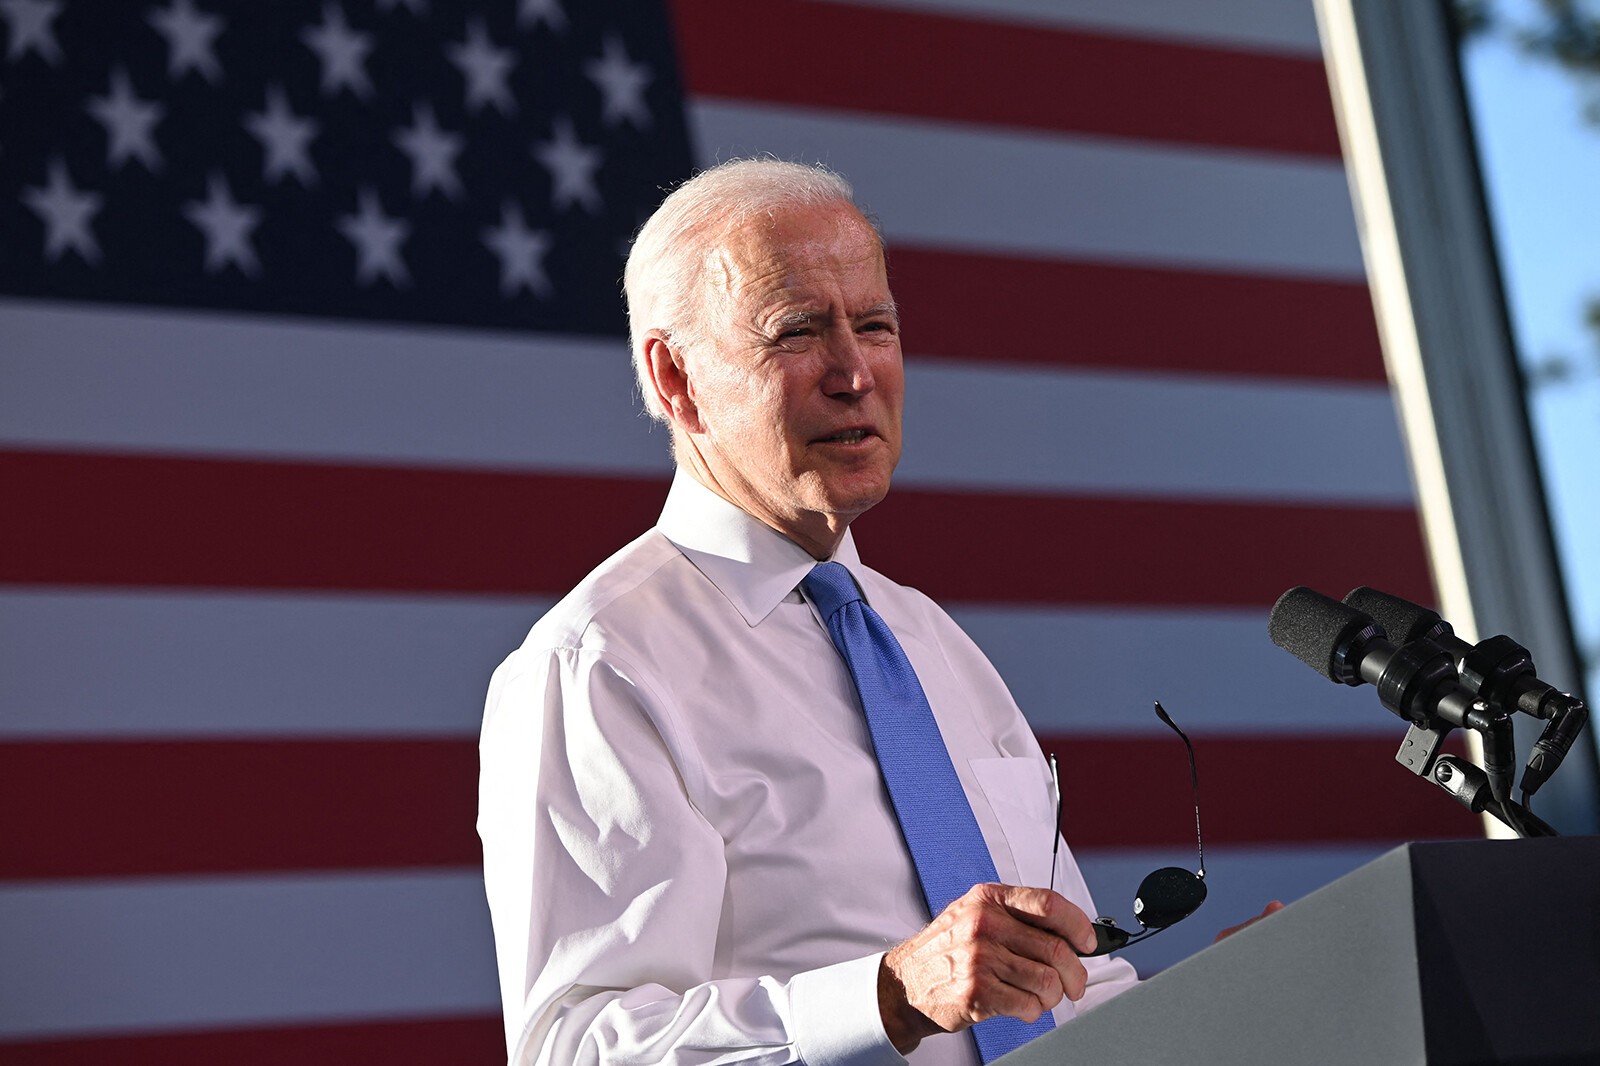 <i>Brendan Smialowski/AFP/Getty Images</i><br/>President Joe Biden will tour a mobile vaccination unit and meet with frontline workers and grassroots volunteers while in Raleigh